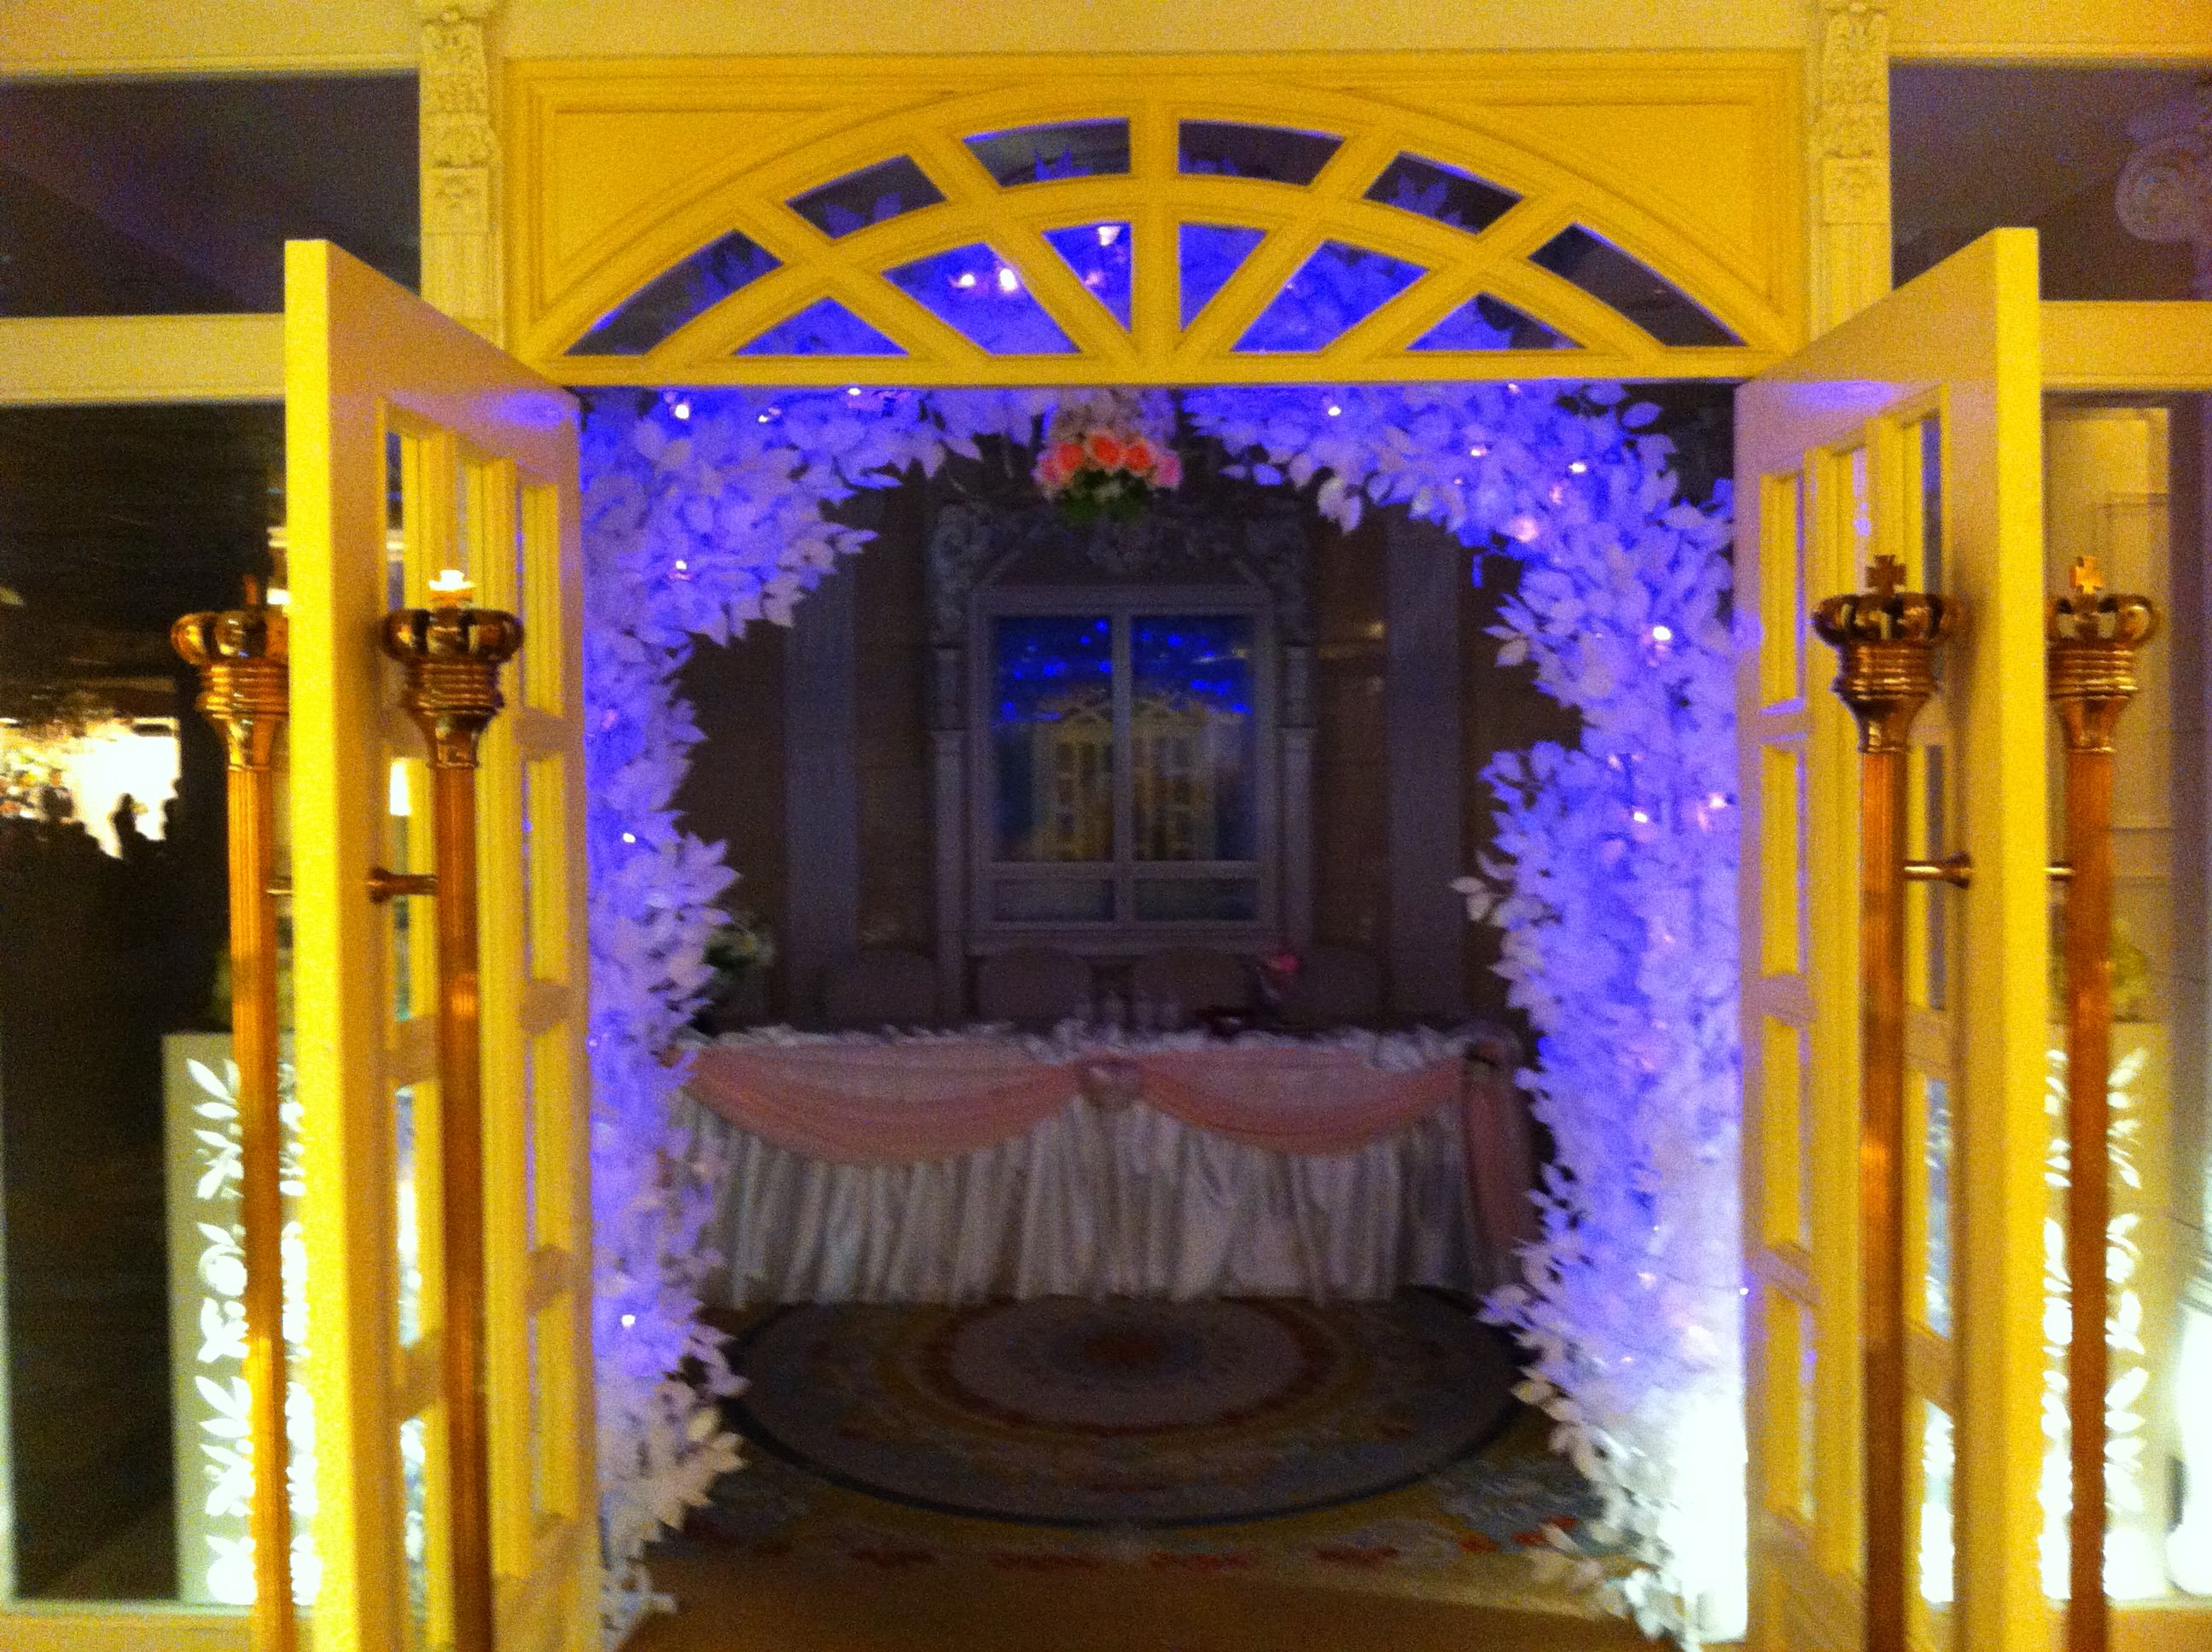 Purple and blue wedding decor  Reception Table Deco  Wedding Deco  Pinterest  Wedding